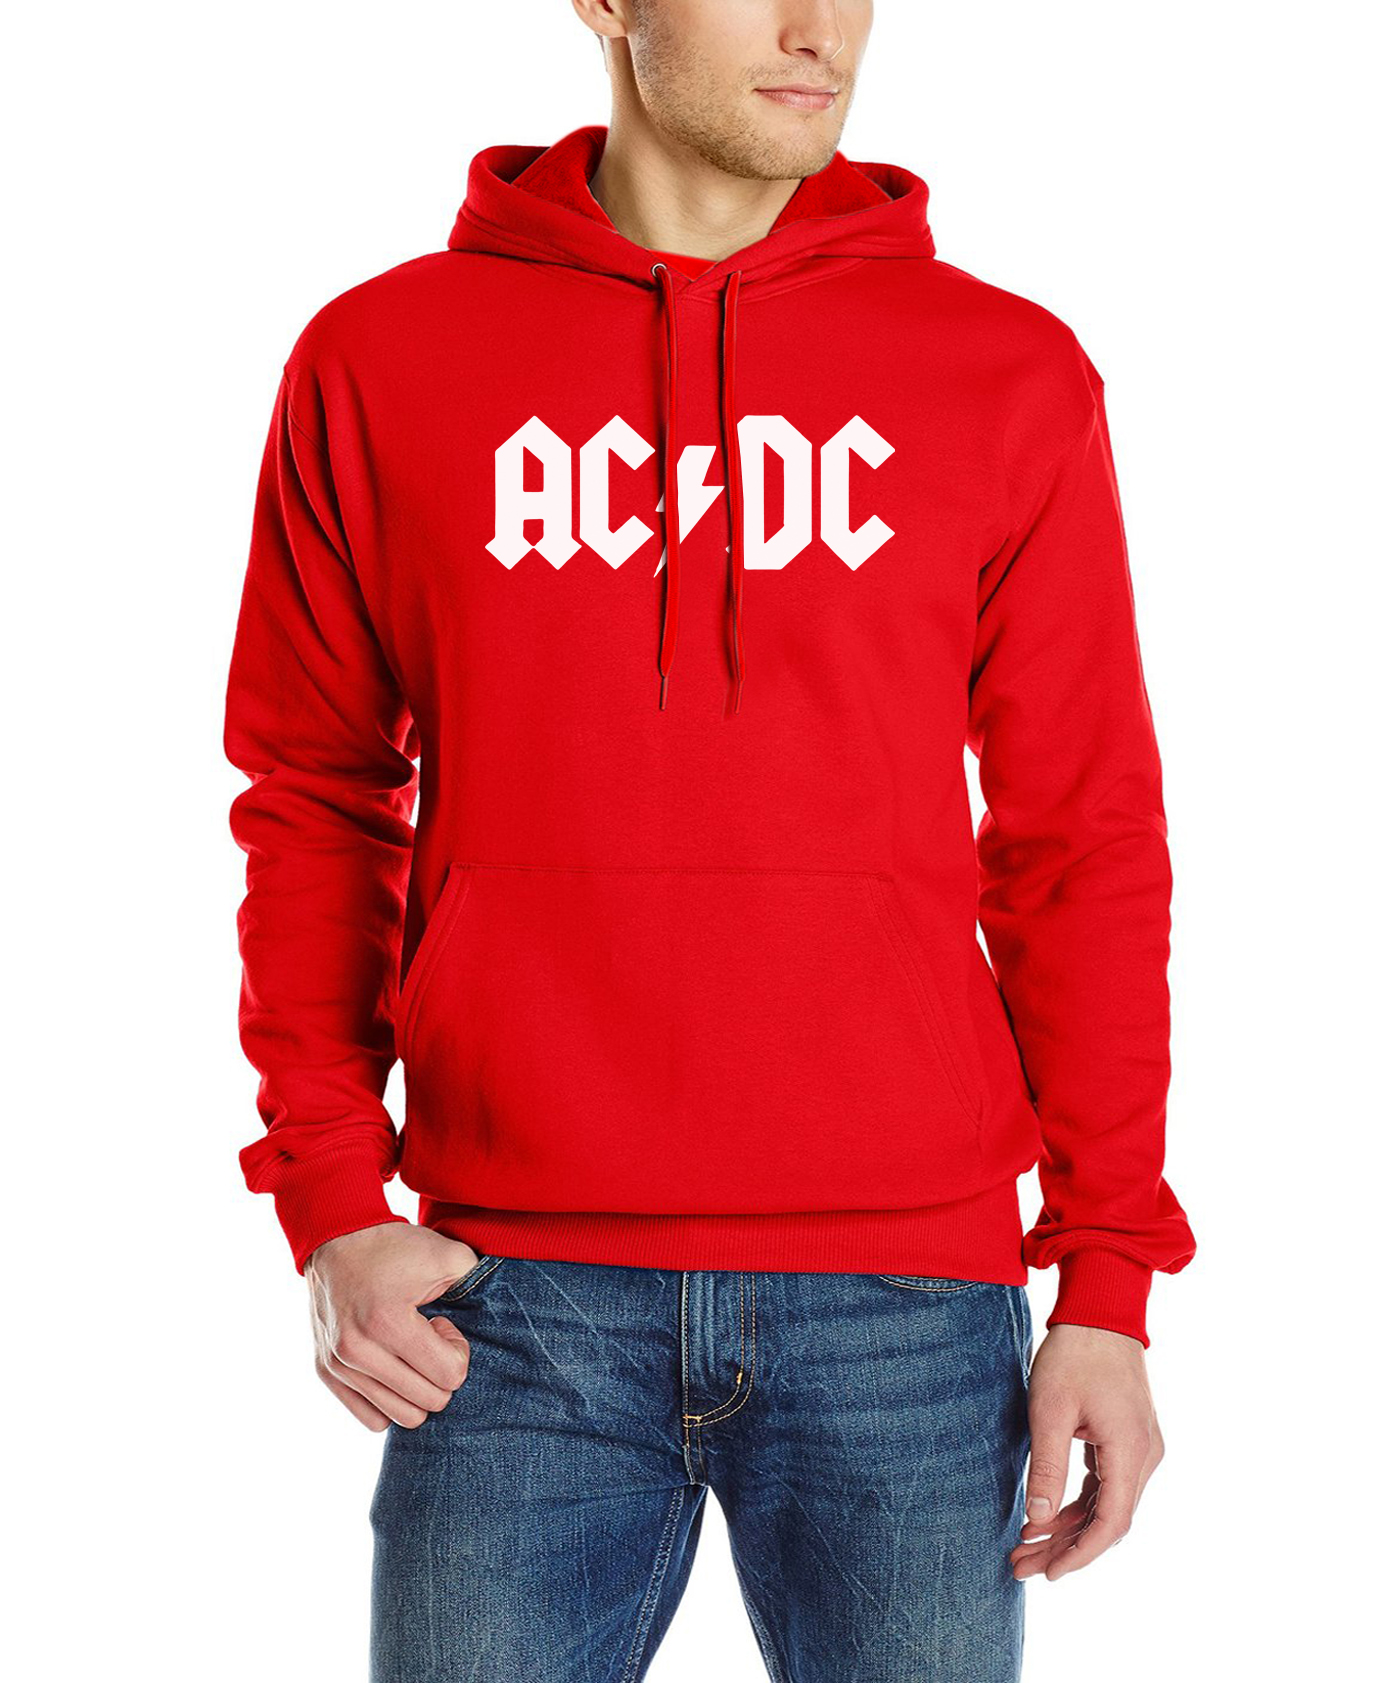 2017 autumn New fashion AC/DC band rock sweatshirt Mens acdc Graphic hooded men Print Casual hoodies hip hop brand tracksuit mma